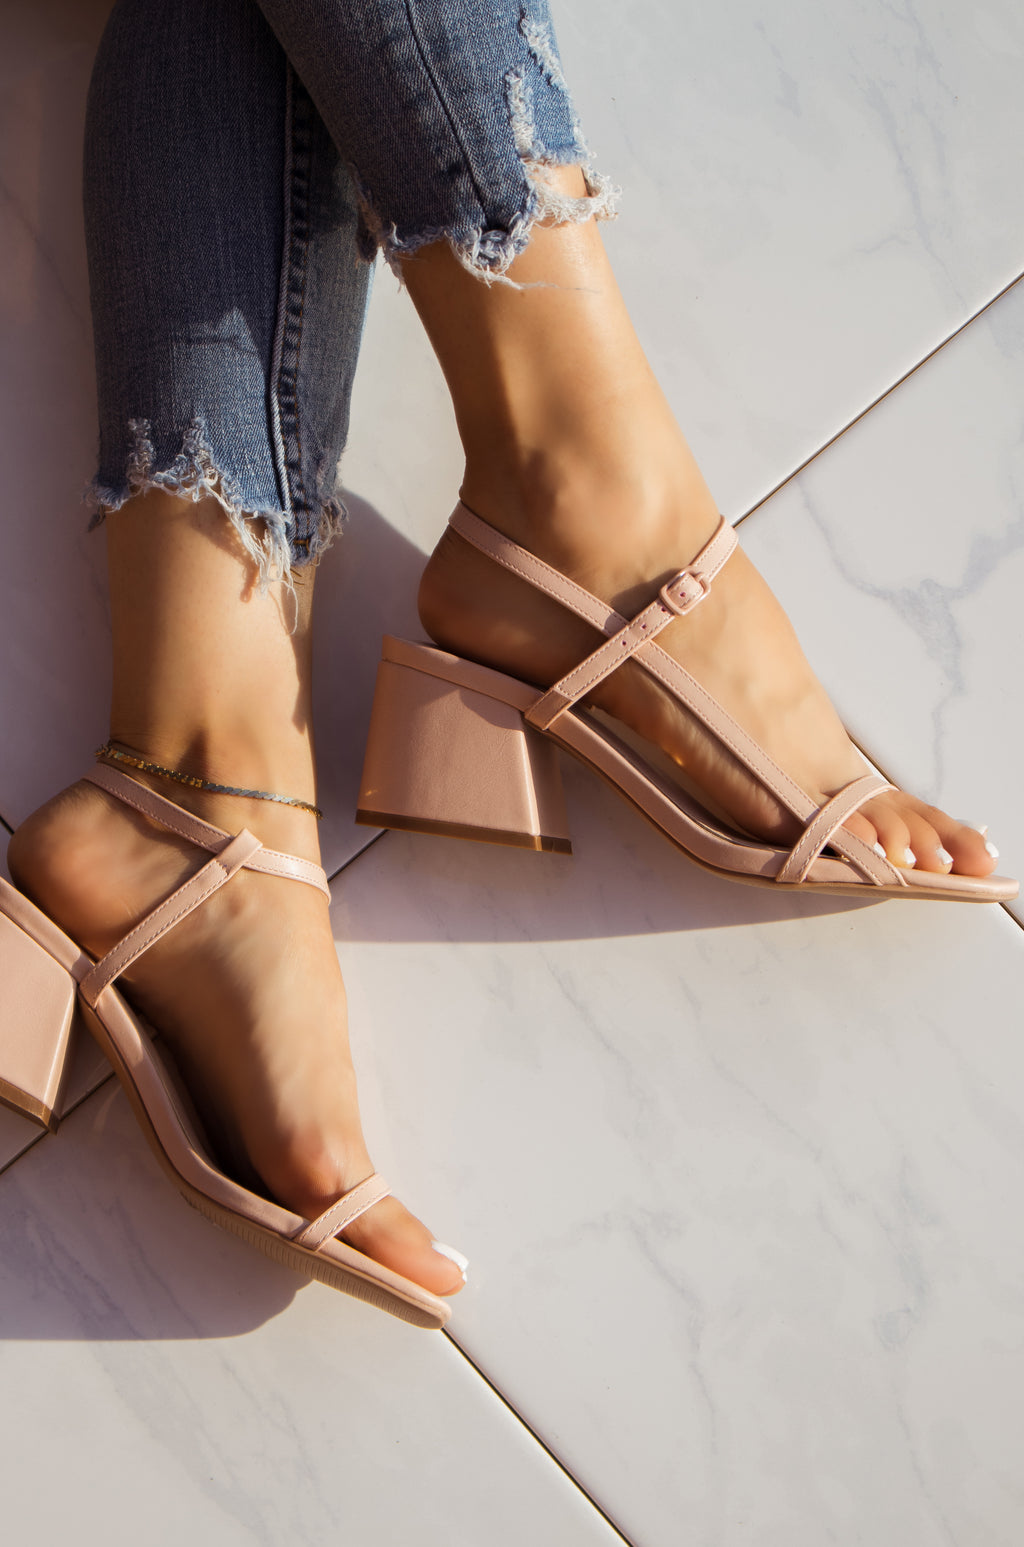 Flirty Moves - Nude Heels